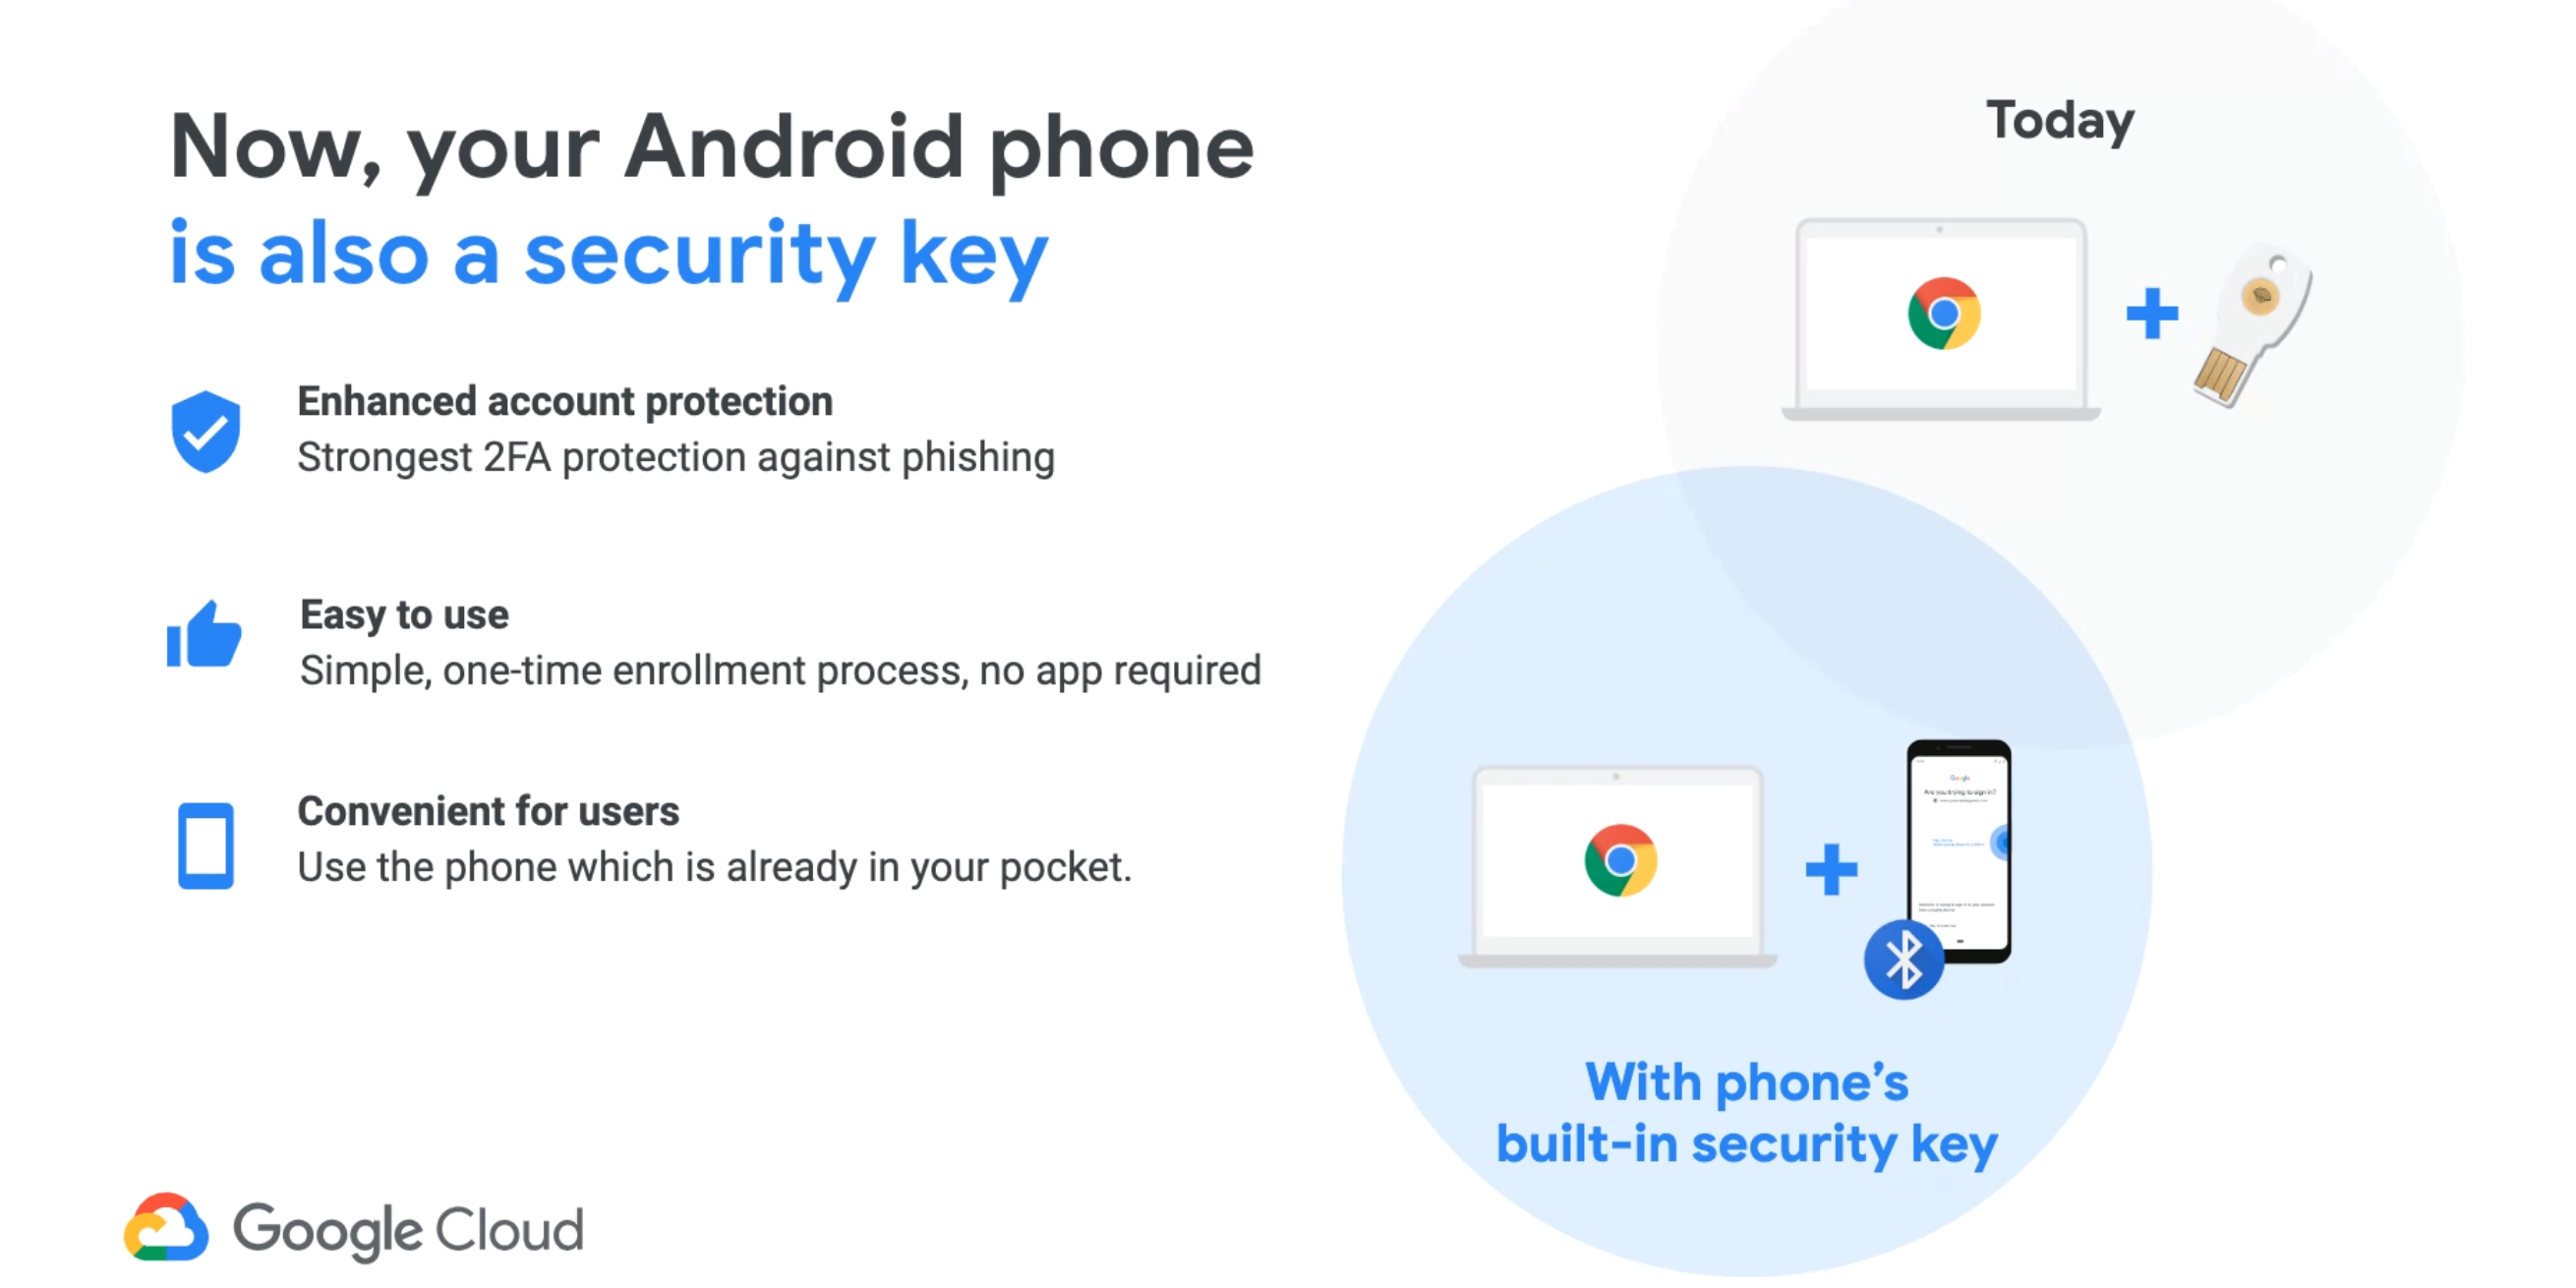 You can now use your Android phone as a 2FA security key for Google